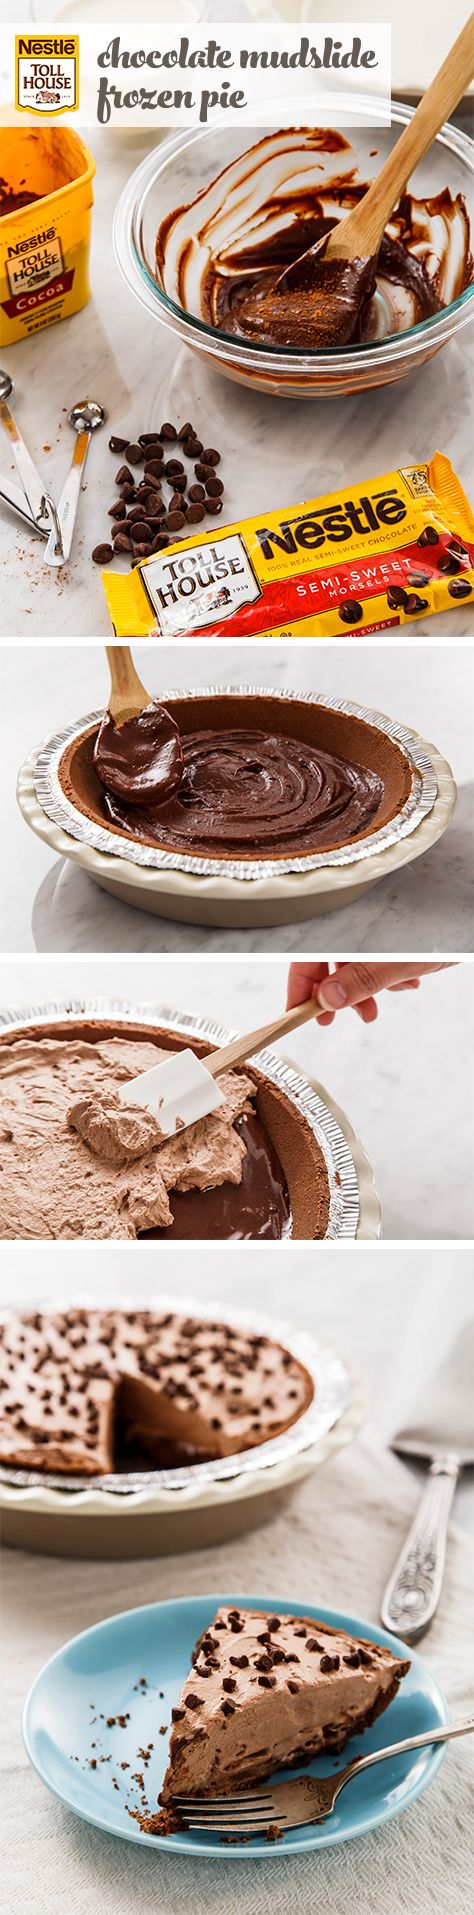 This chocolate pie is easier than it looks (but you don't have to tell anyone!) The silky filling pairs the flavors of coffee and chocolate, creating pure mocha perfection in every bite. It's a classic summer dessert that's perfect for sharing.